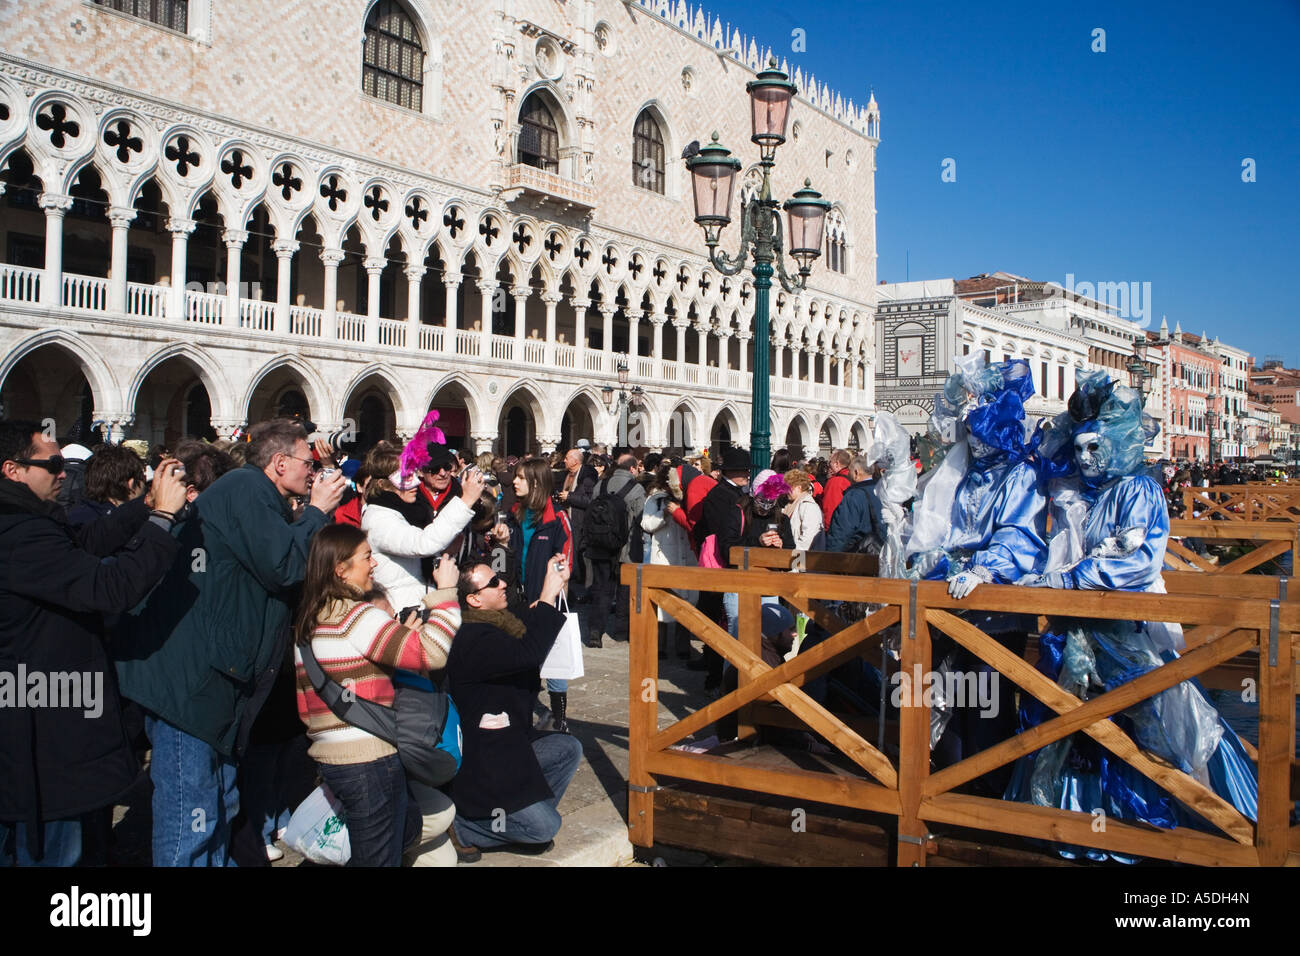 7e51df900e8e Photographers photographing masked people at the Venice Carnival, Italy  2007 - Stock Image